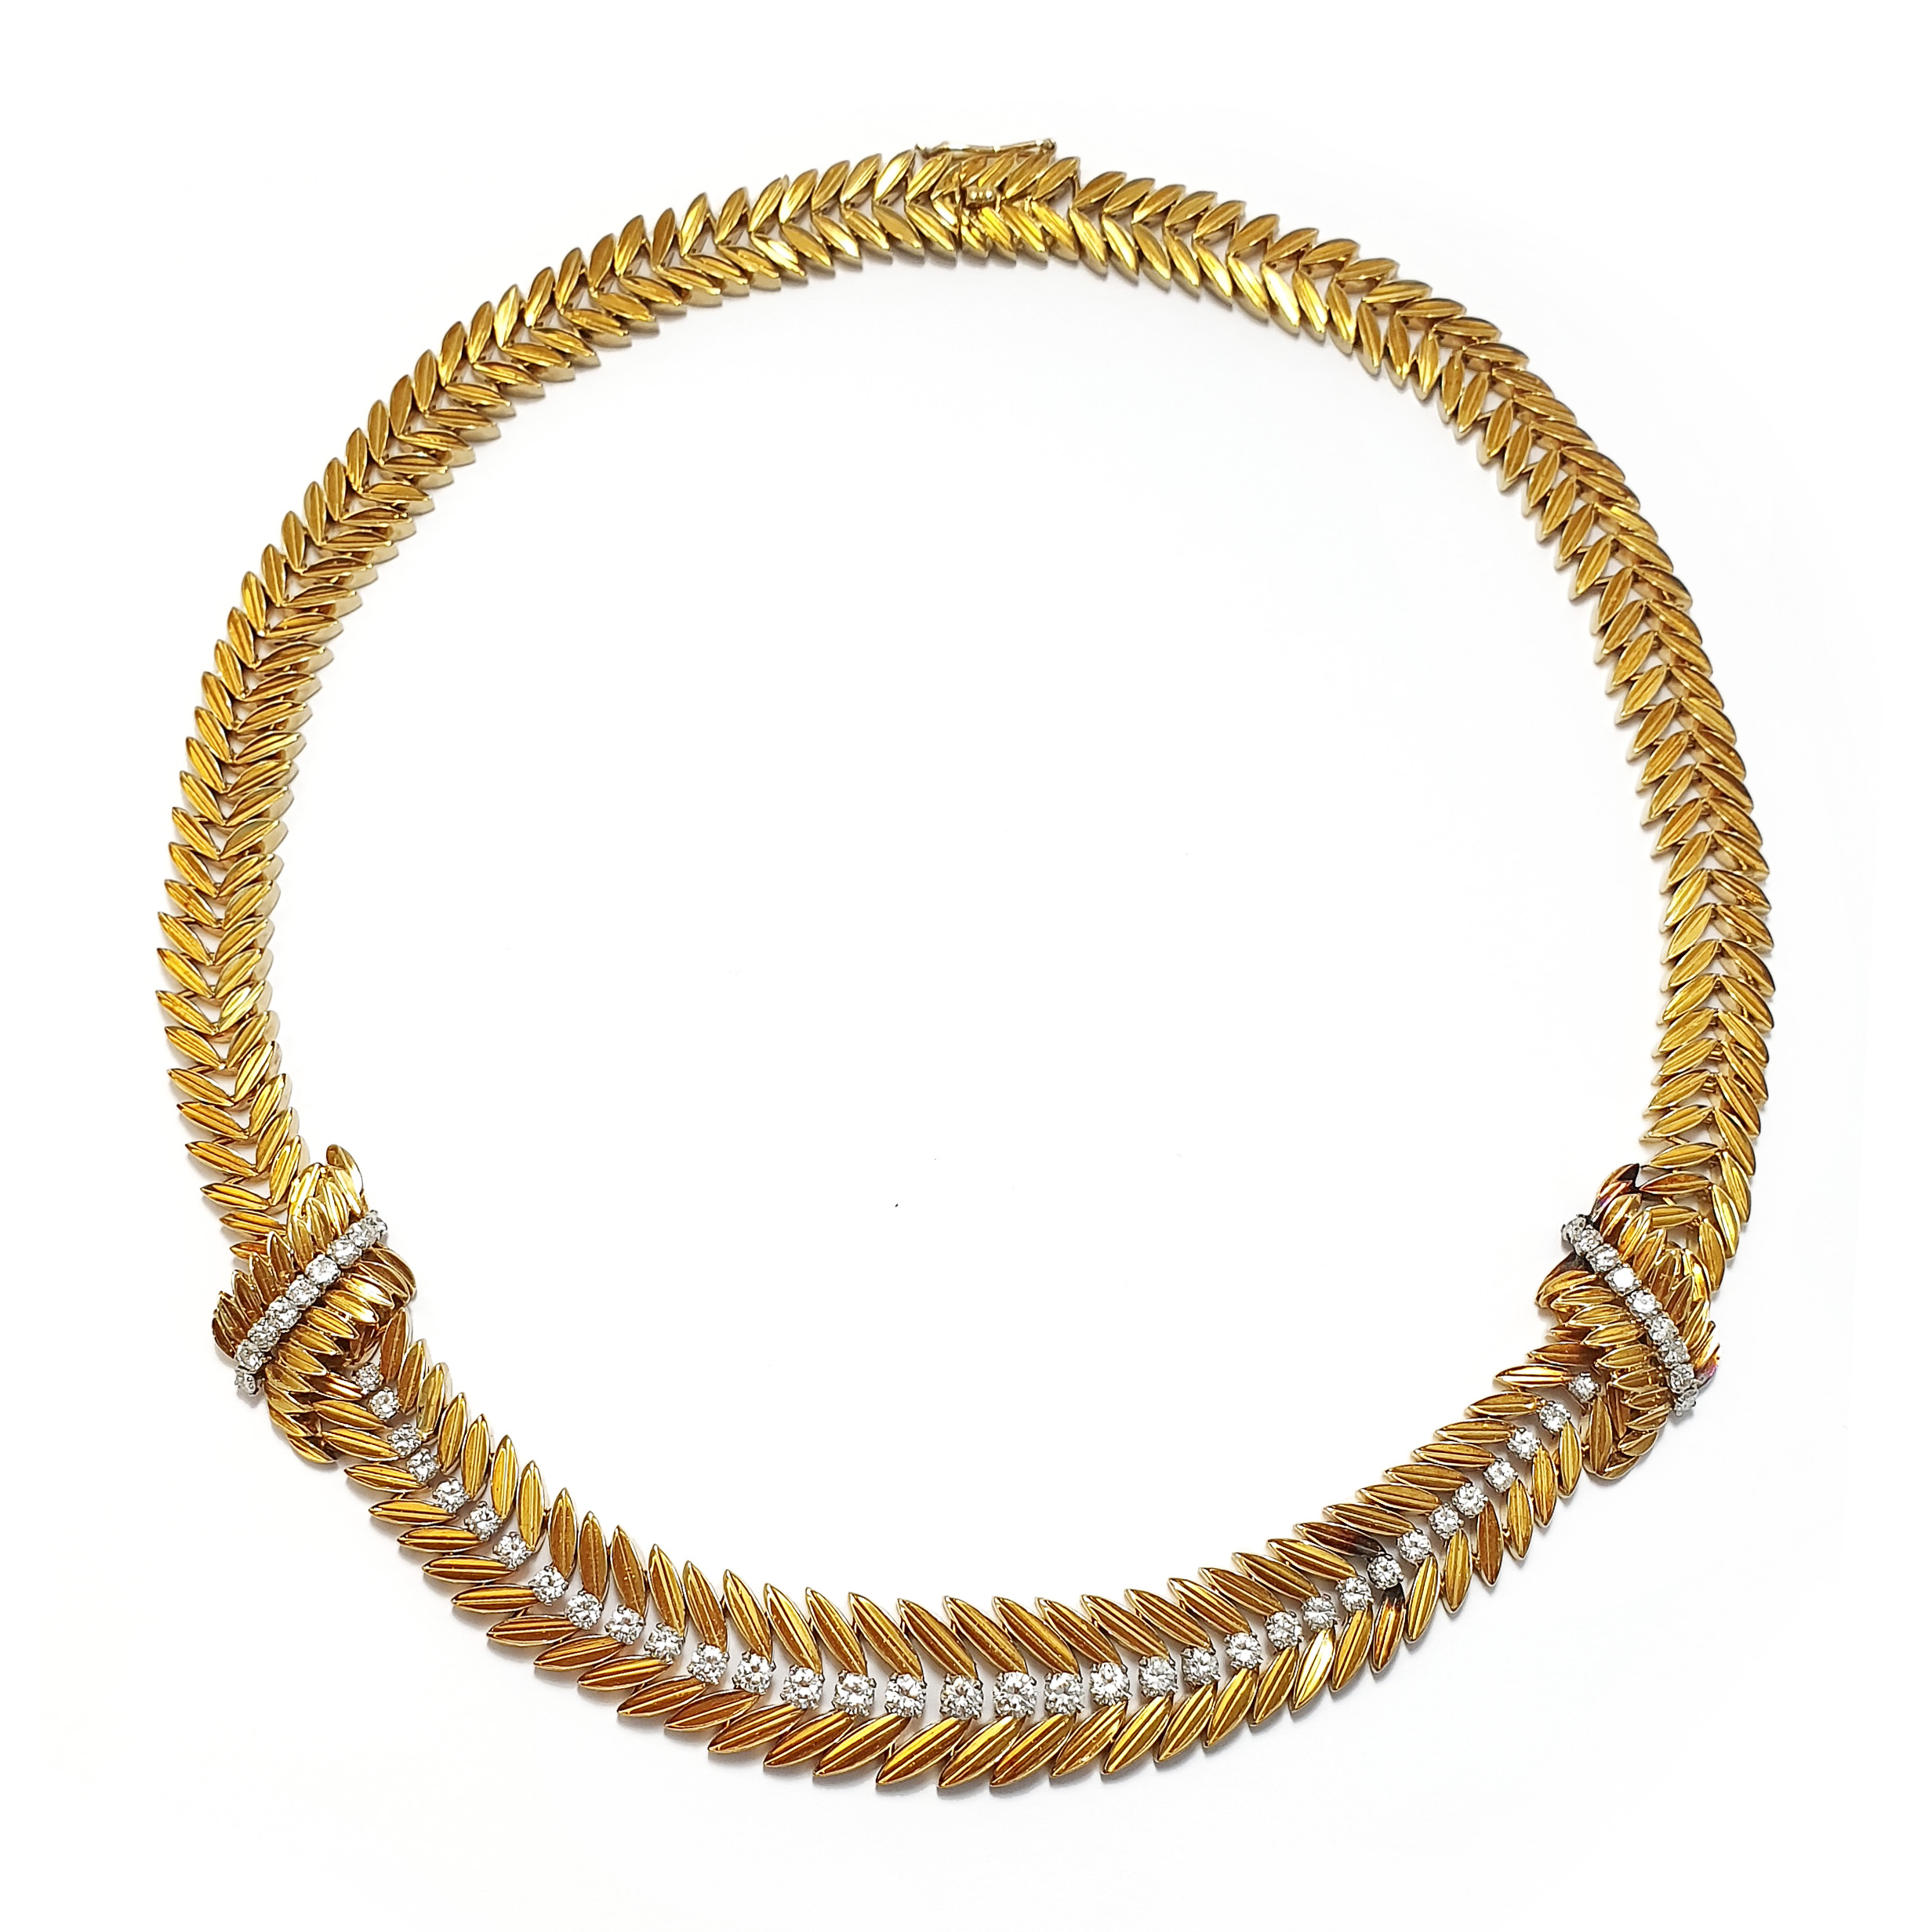 NK91 050919 Chantilly necklace by Van Cleef and Arpels.jpg